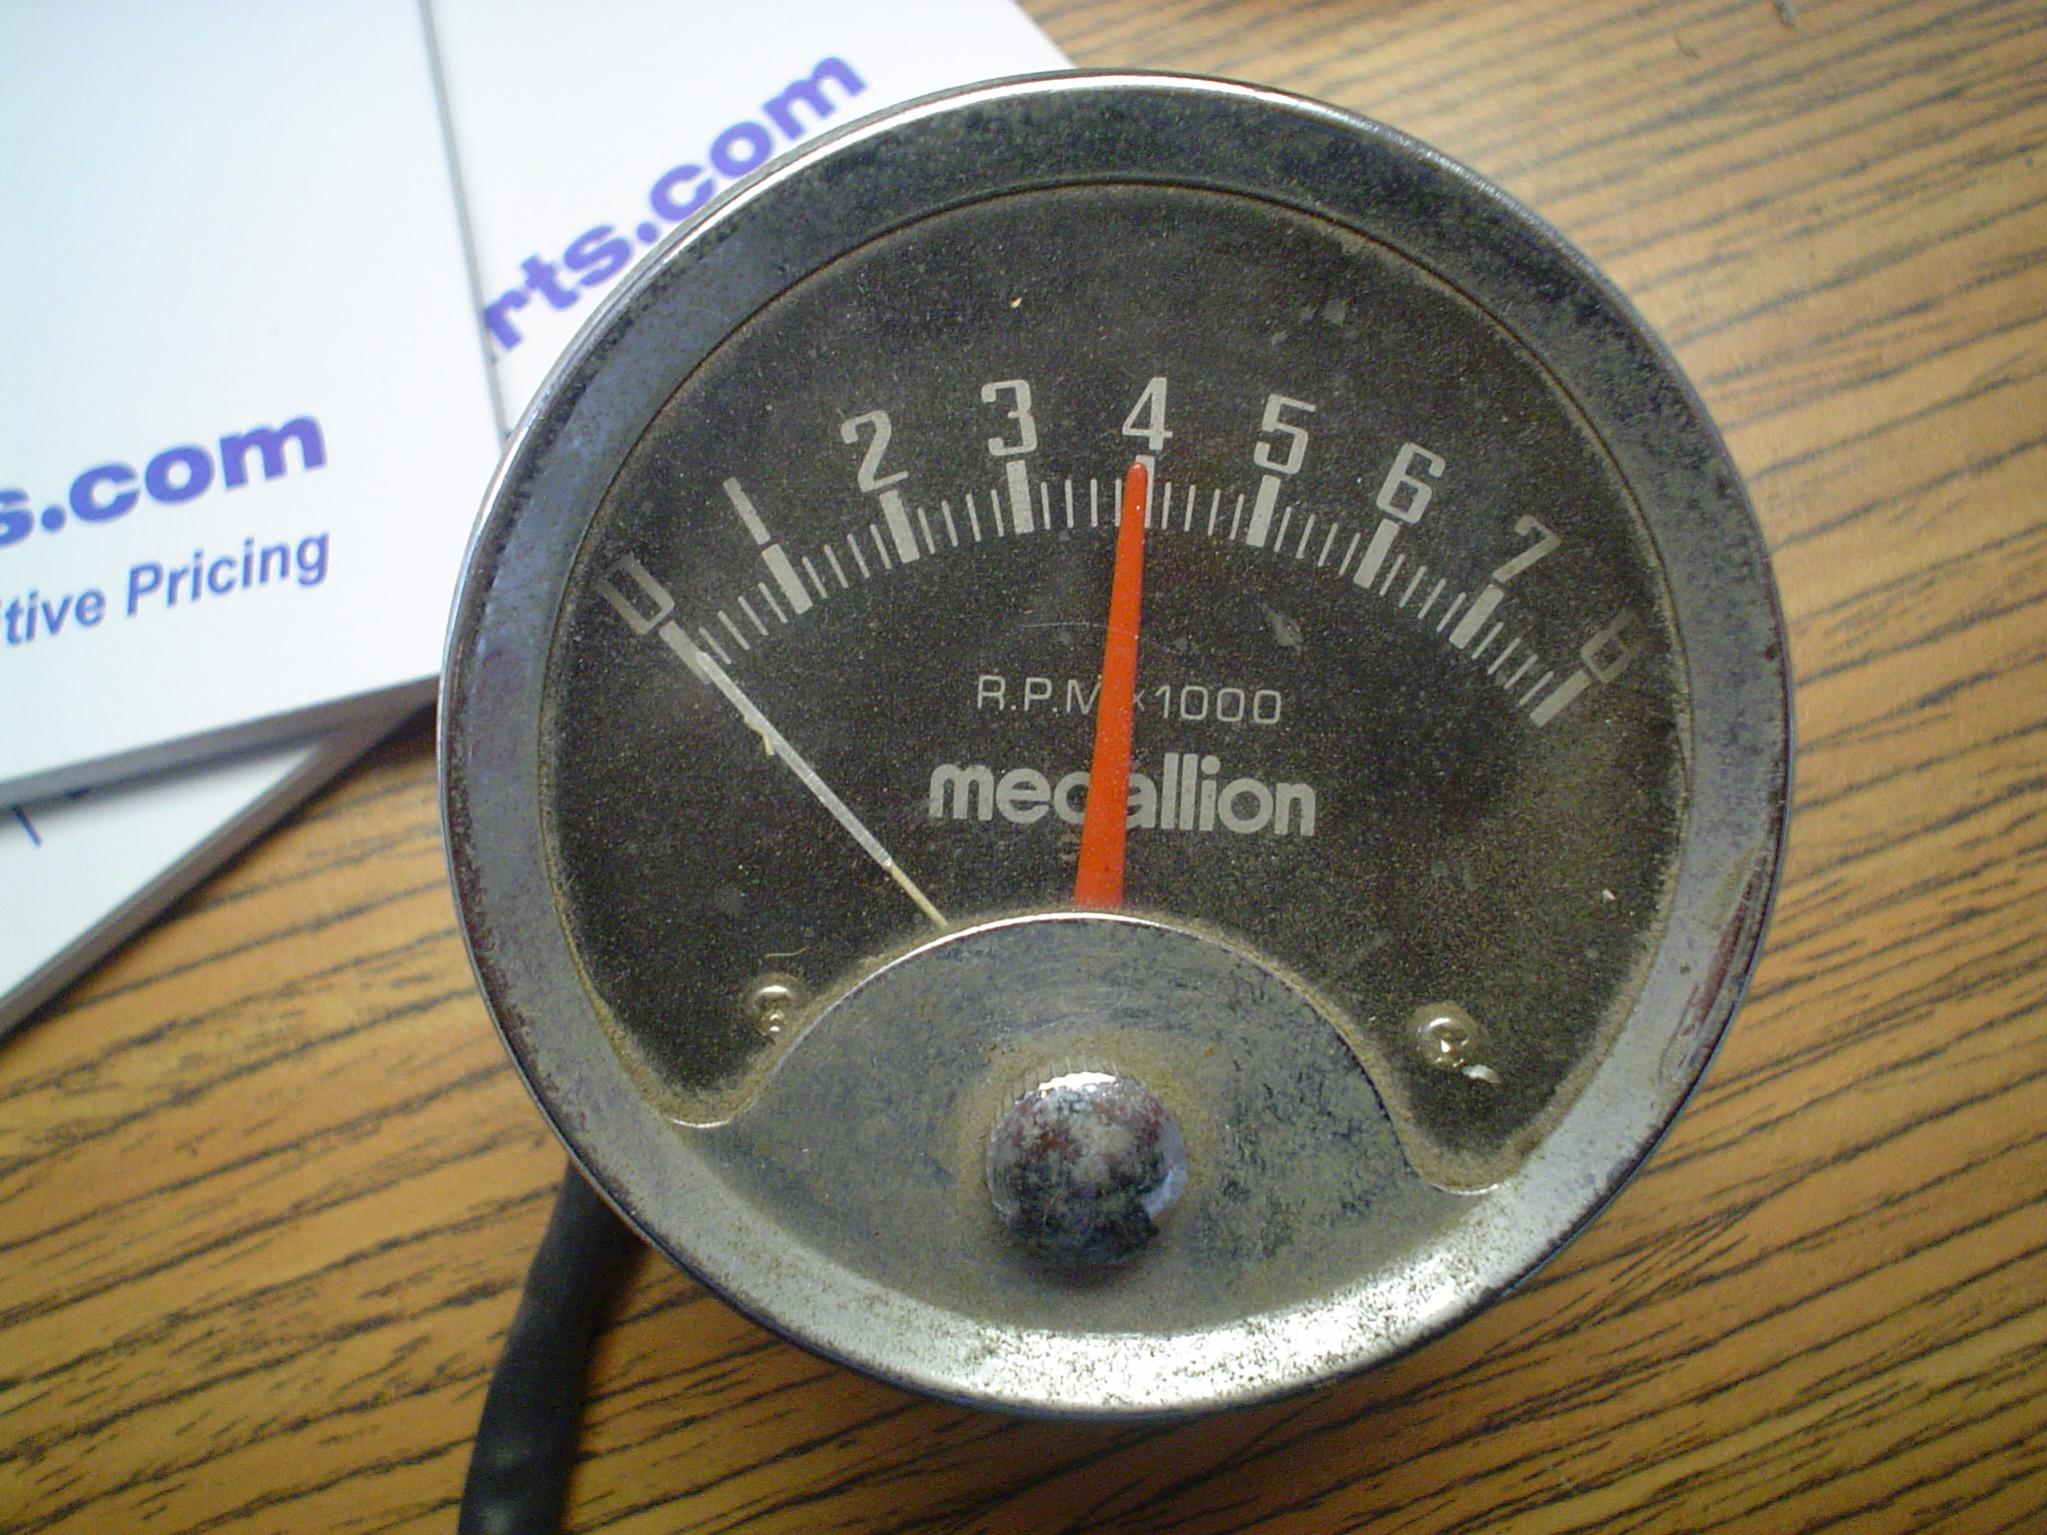 Medallion Tachometer Wiring Diagram Just Another Blog Vdo Car Tuning Images Gallery